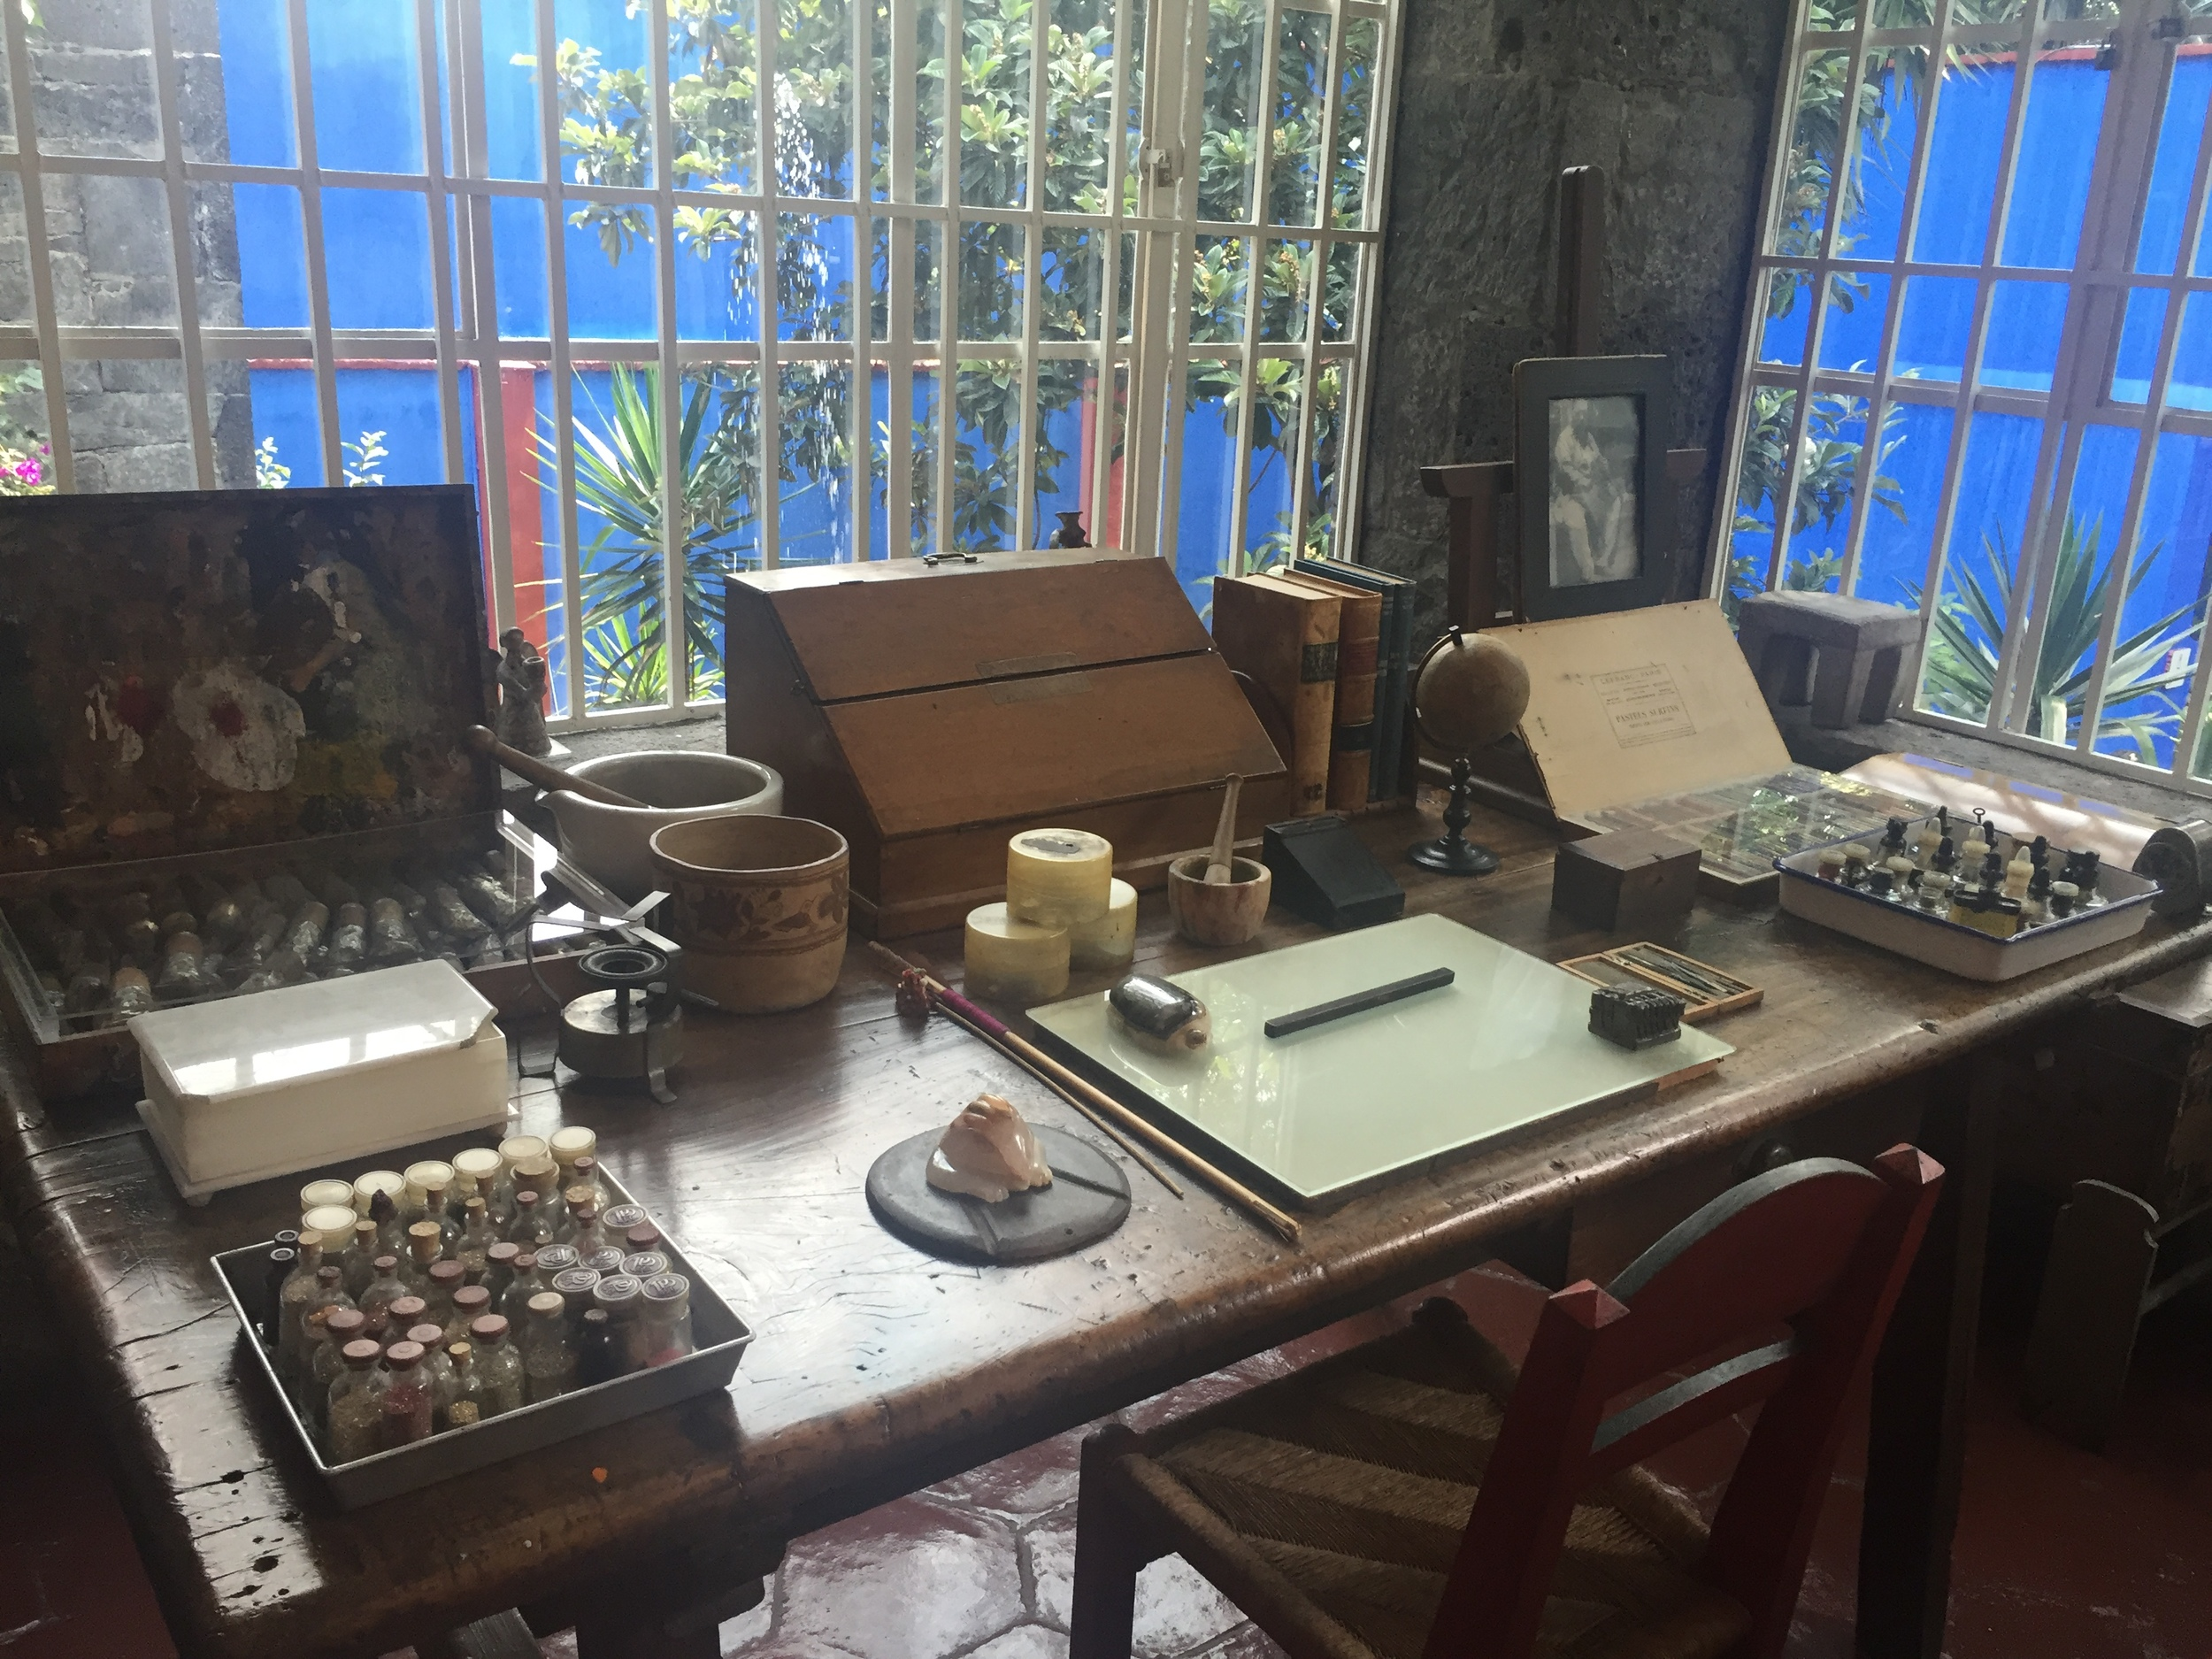 Frida's wonderful studio on the second floor.